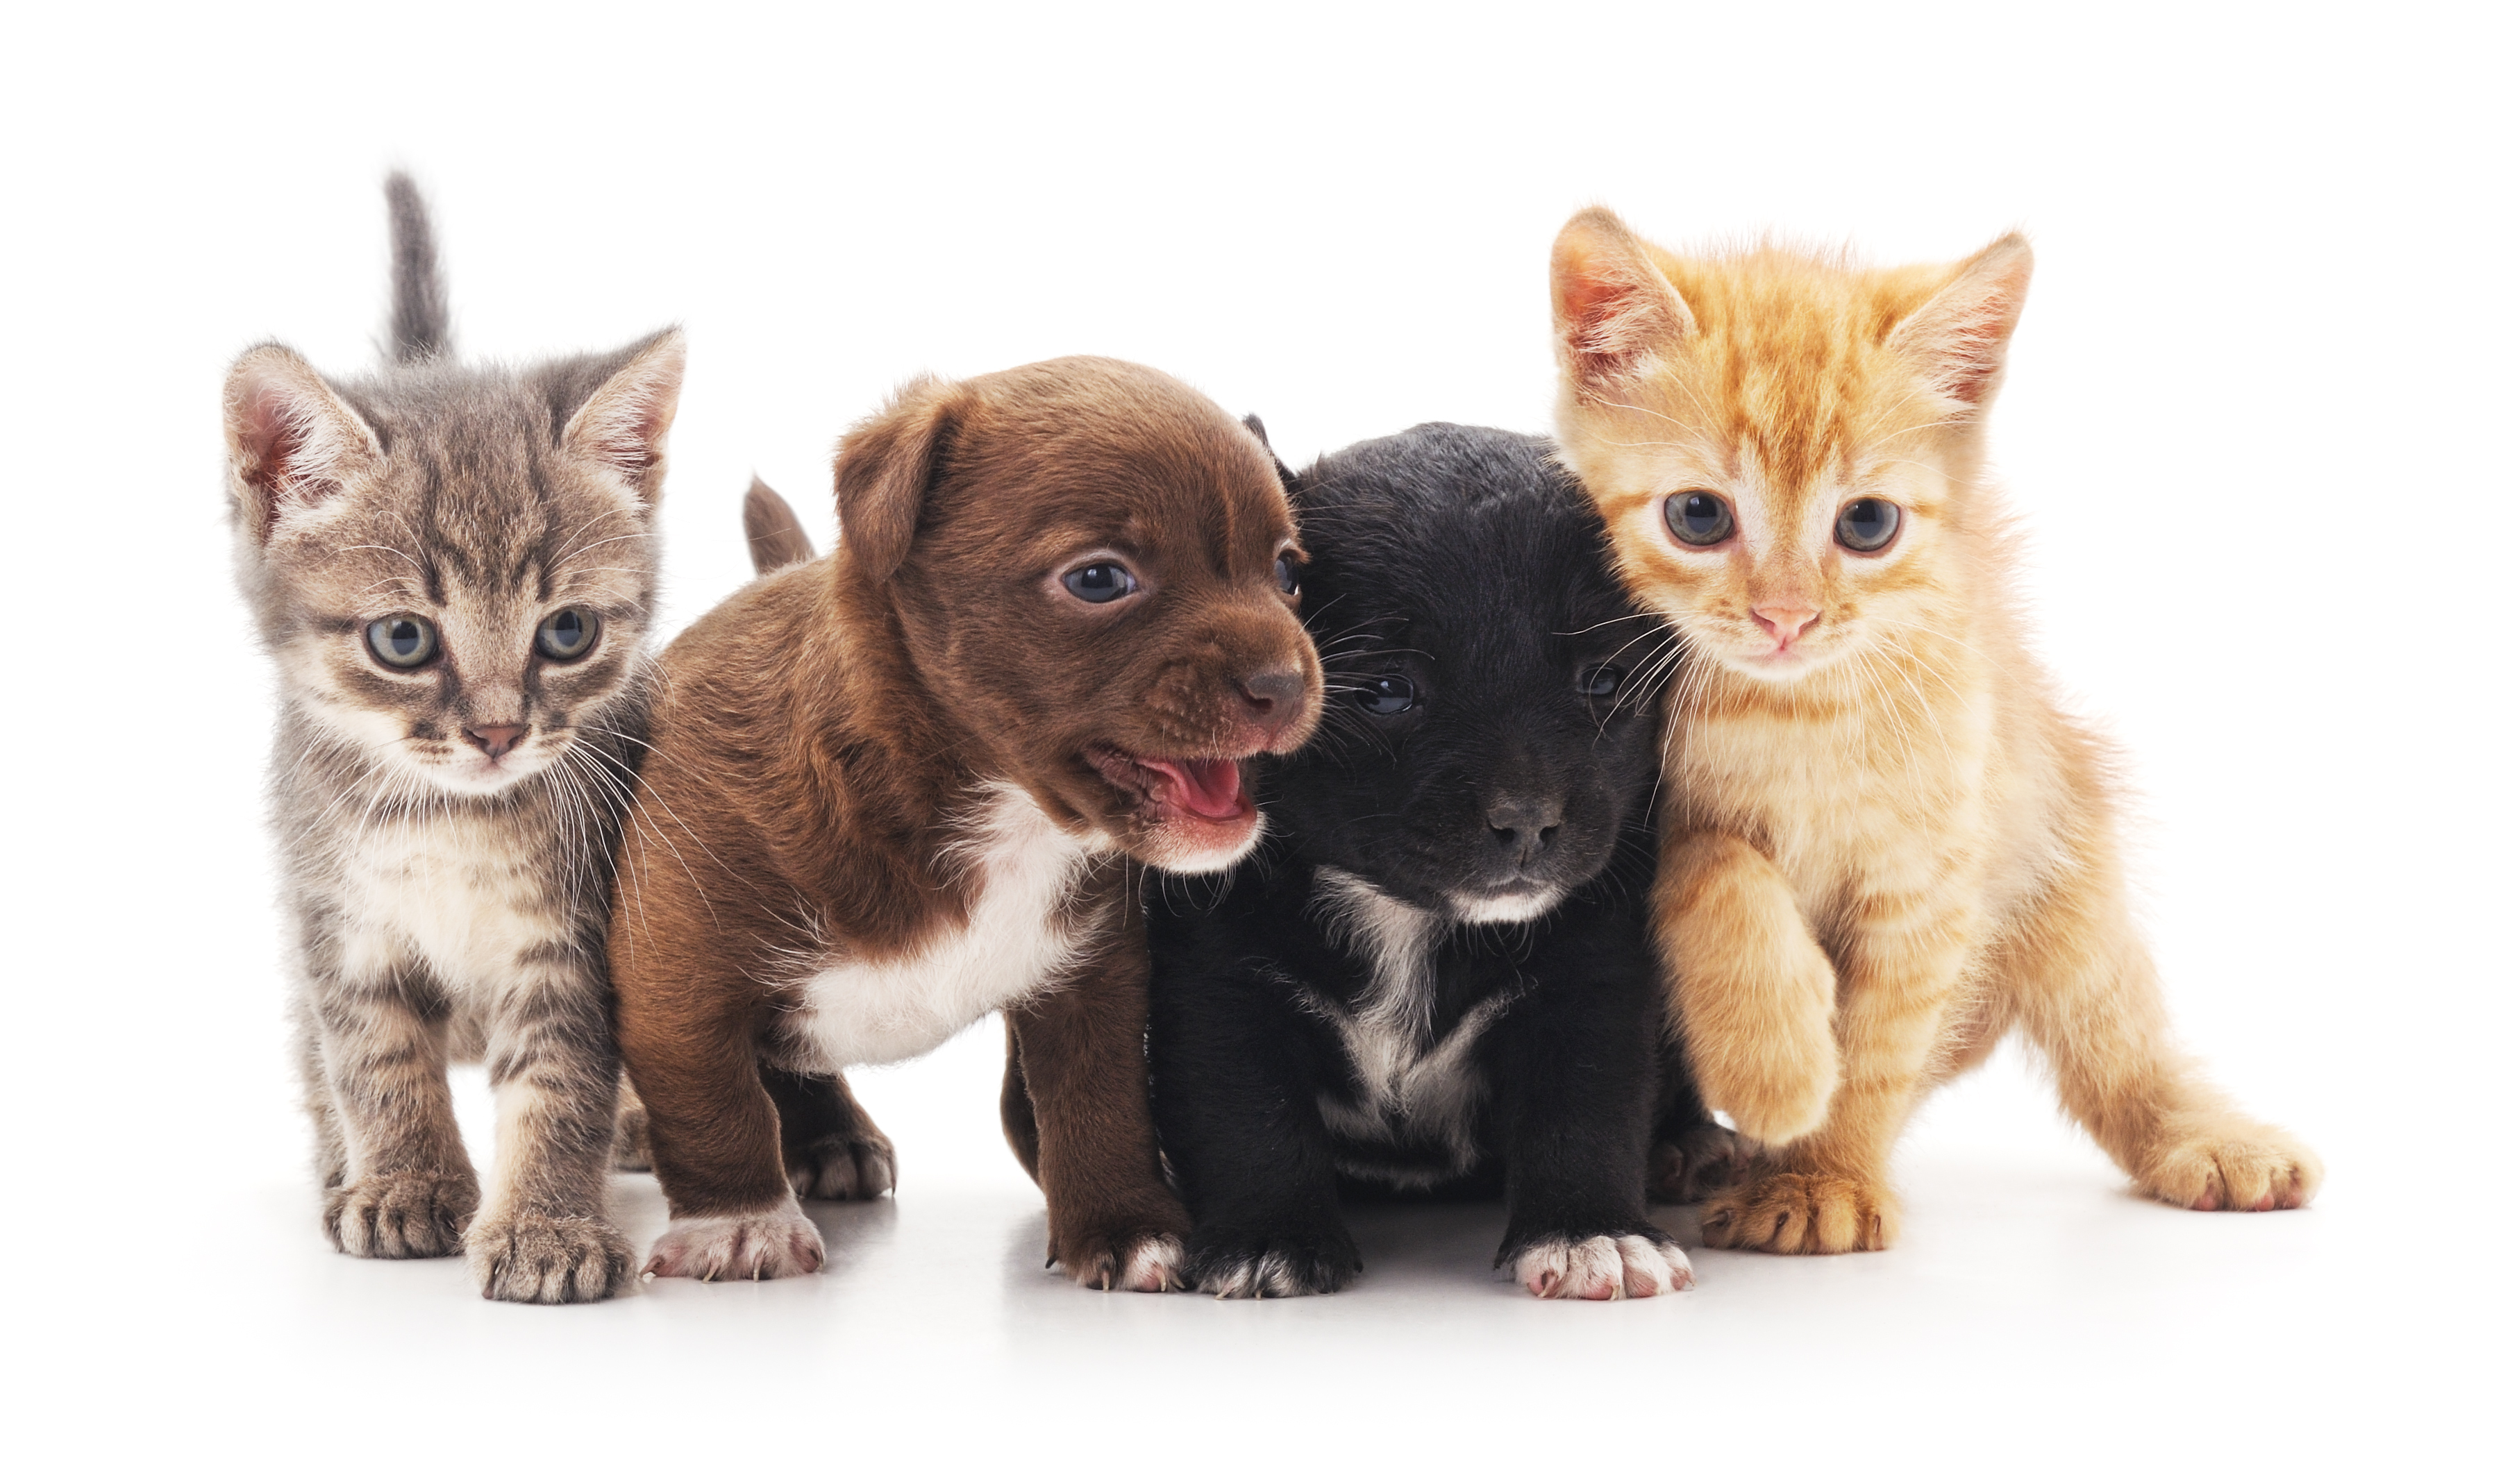 cute puppies and kittens need pet insurance; Trupanion review